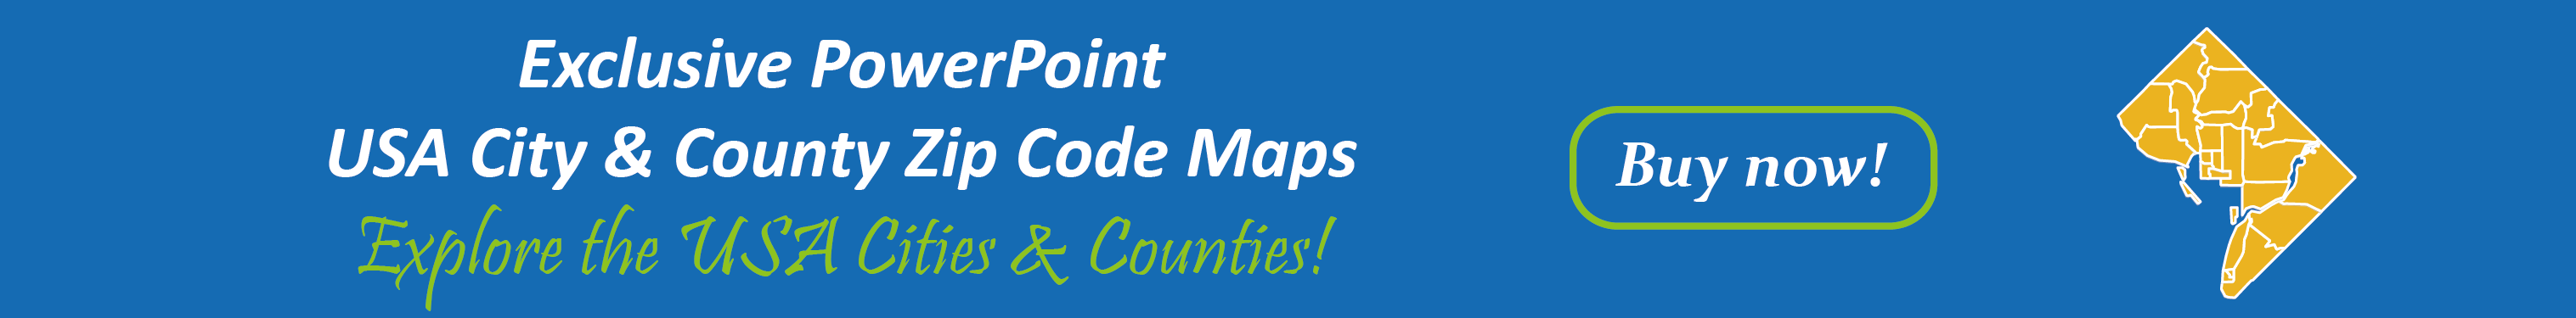 Free India Editable Map Free PowerPoint Templates - Us zip code for india